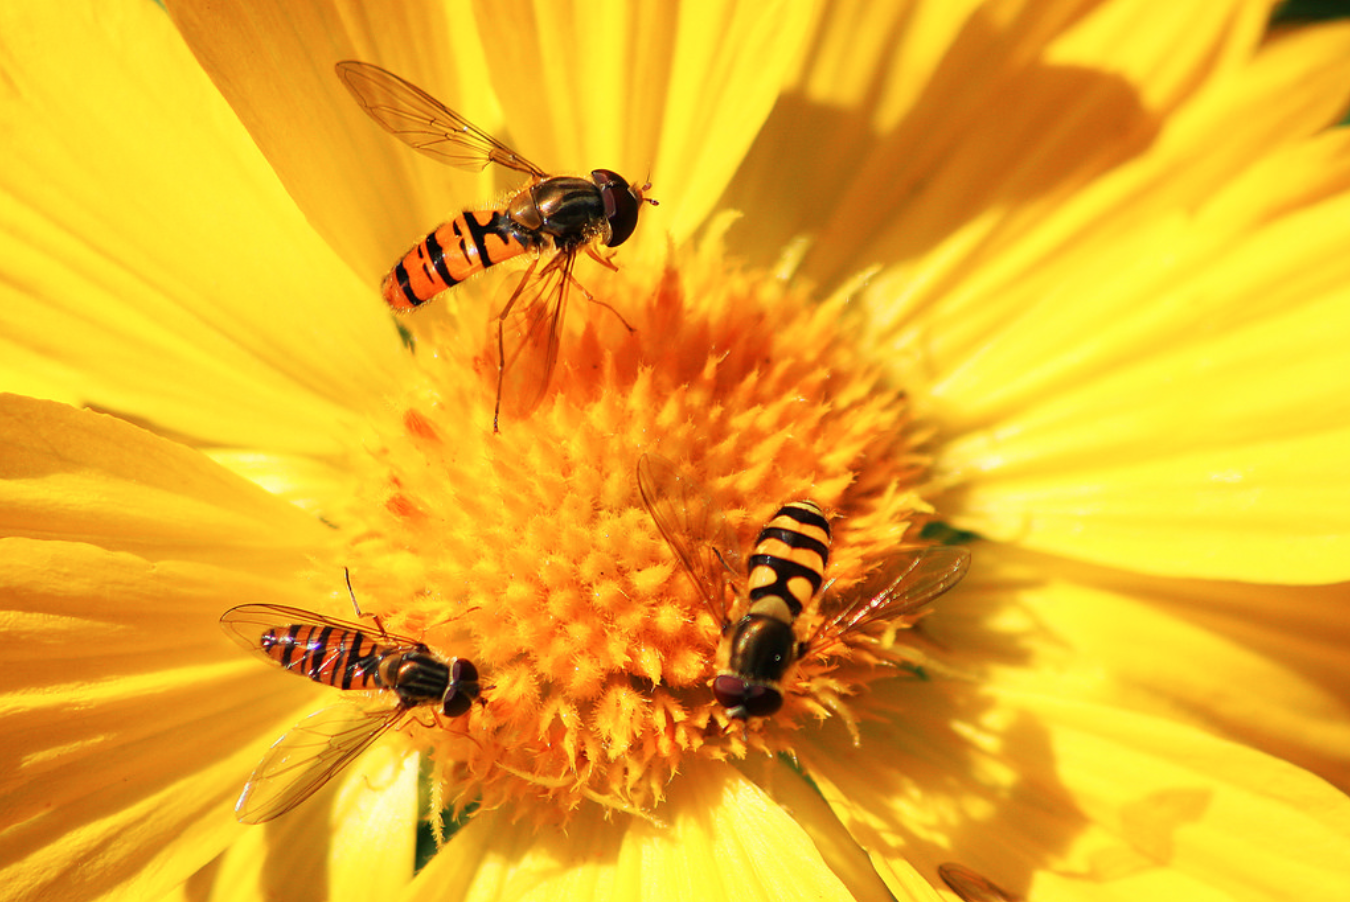 Bees can solve basic maths problems: study